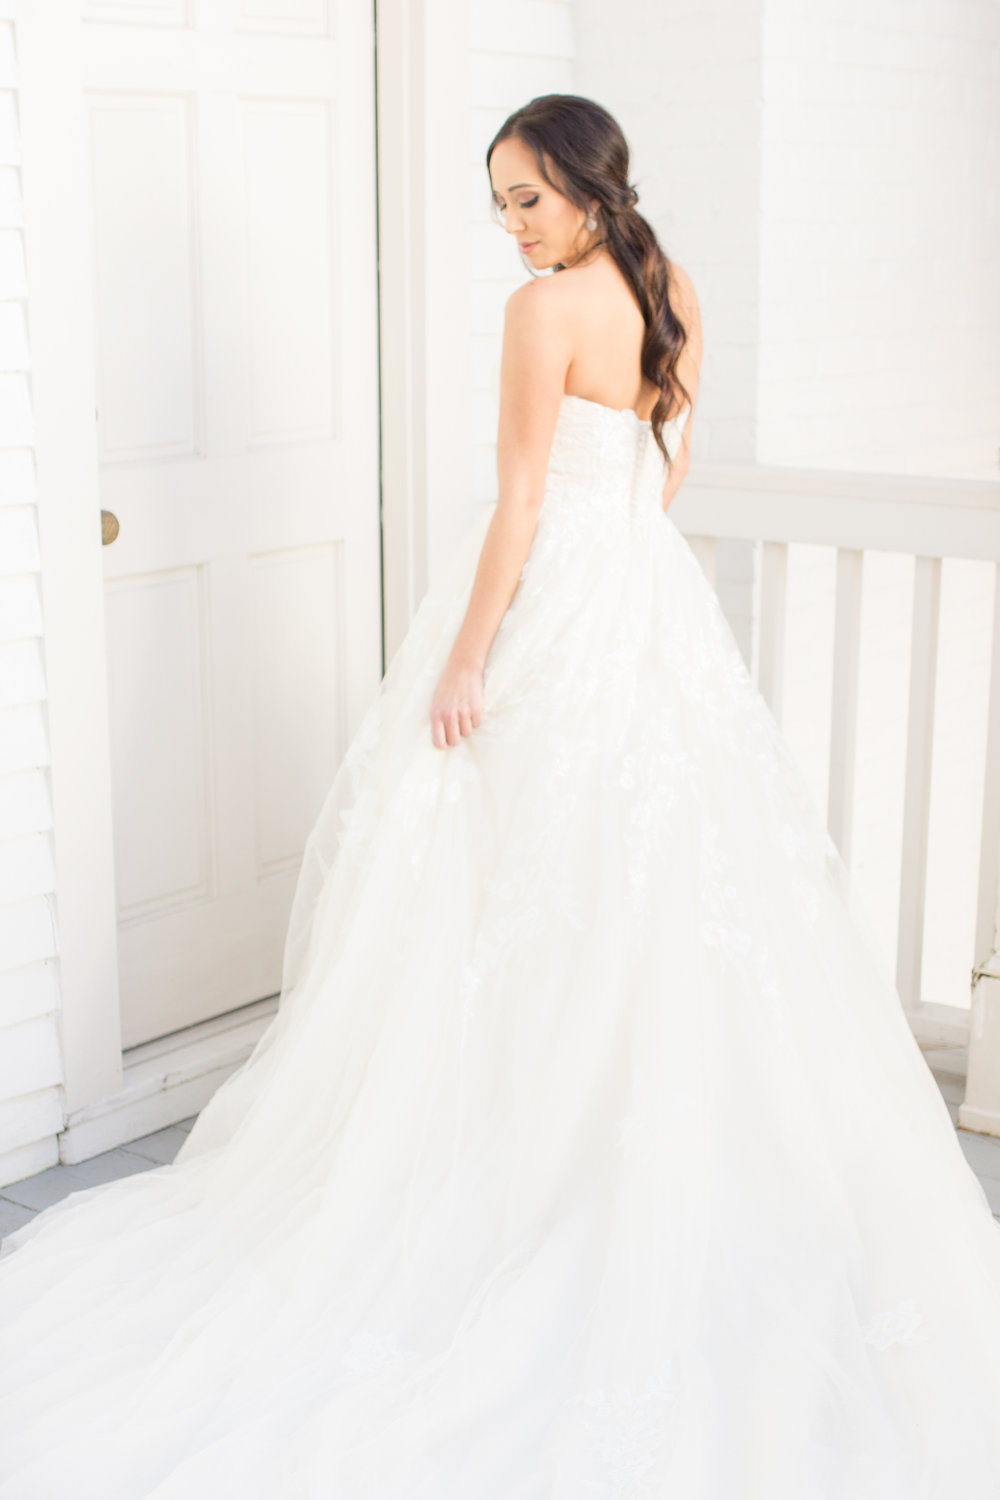 Your timeless beauty and elegance captured on this joyous occasion!